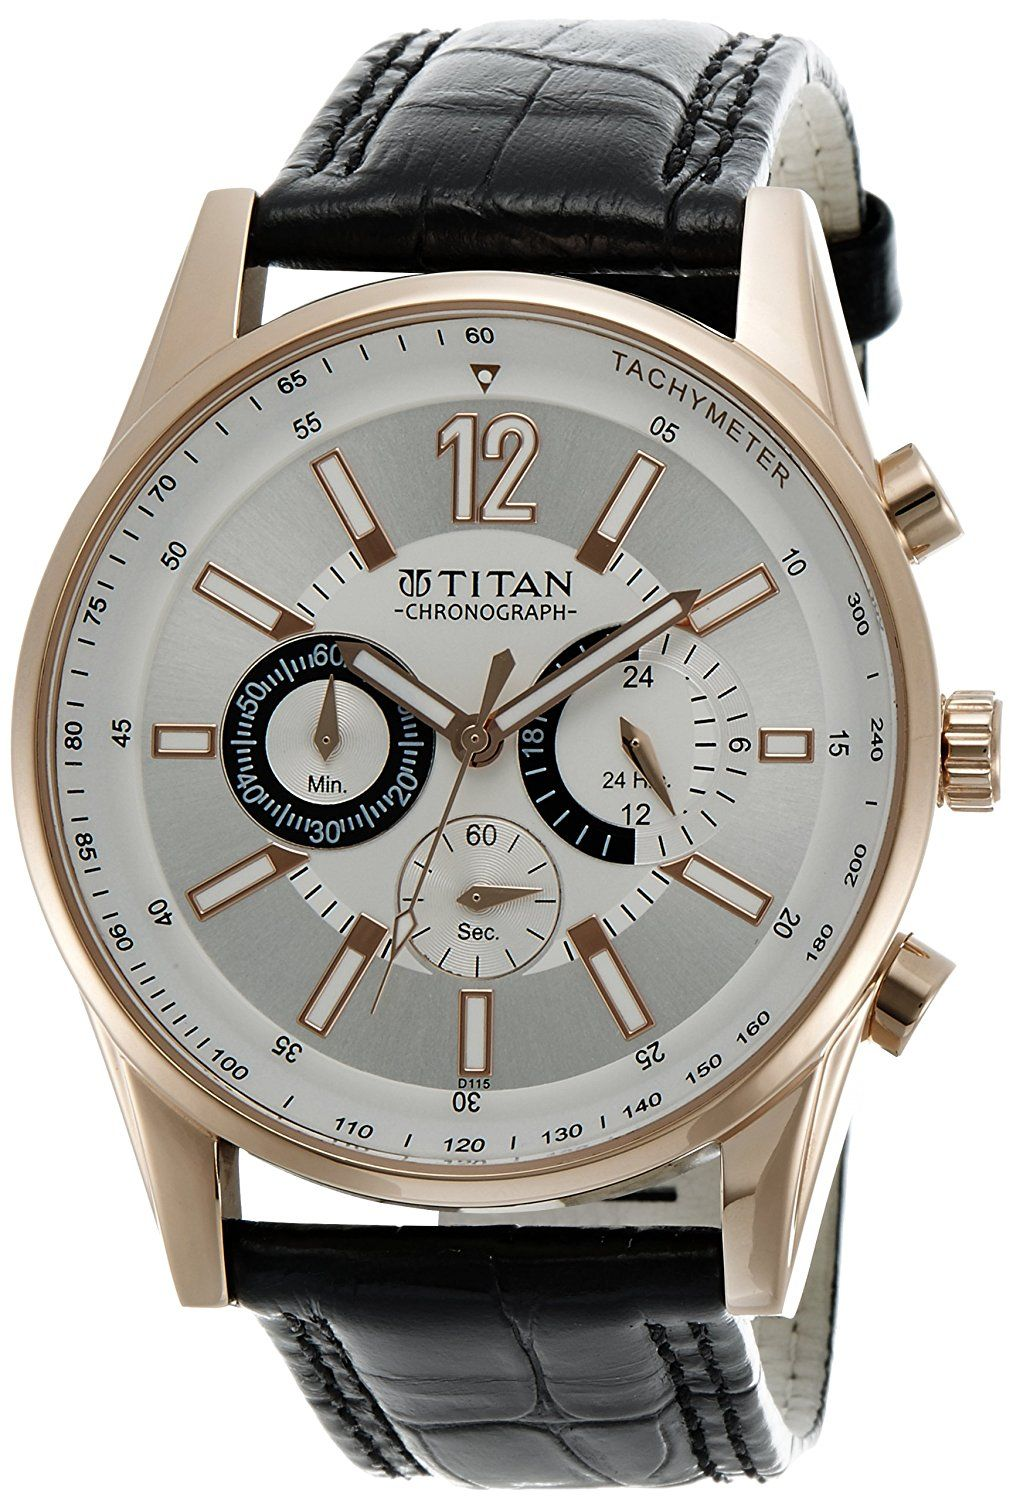 6c2e4b3c58 Buy Titan Octane Chronograph Multi-Color Dial Men's Watch - NC9322WL01A  Online at Low Prices in India - Amazon.in